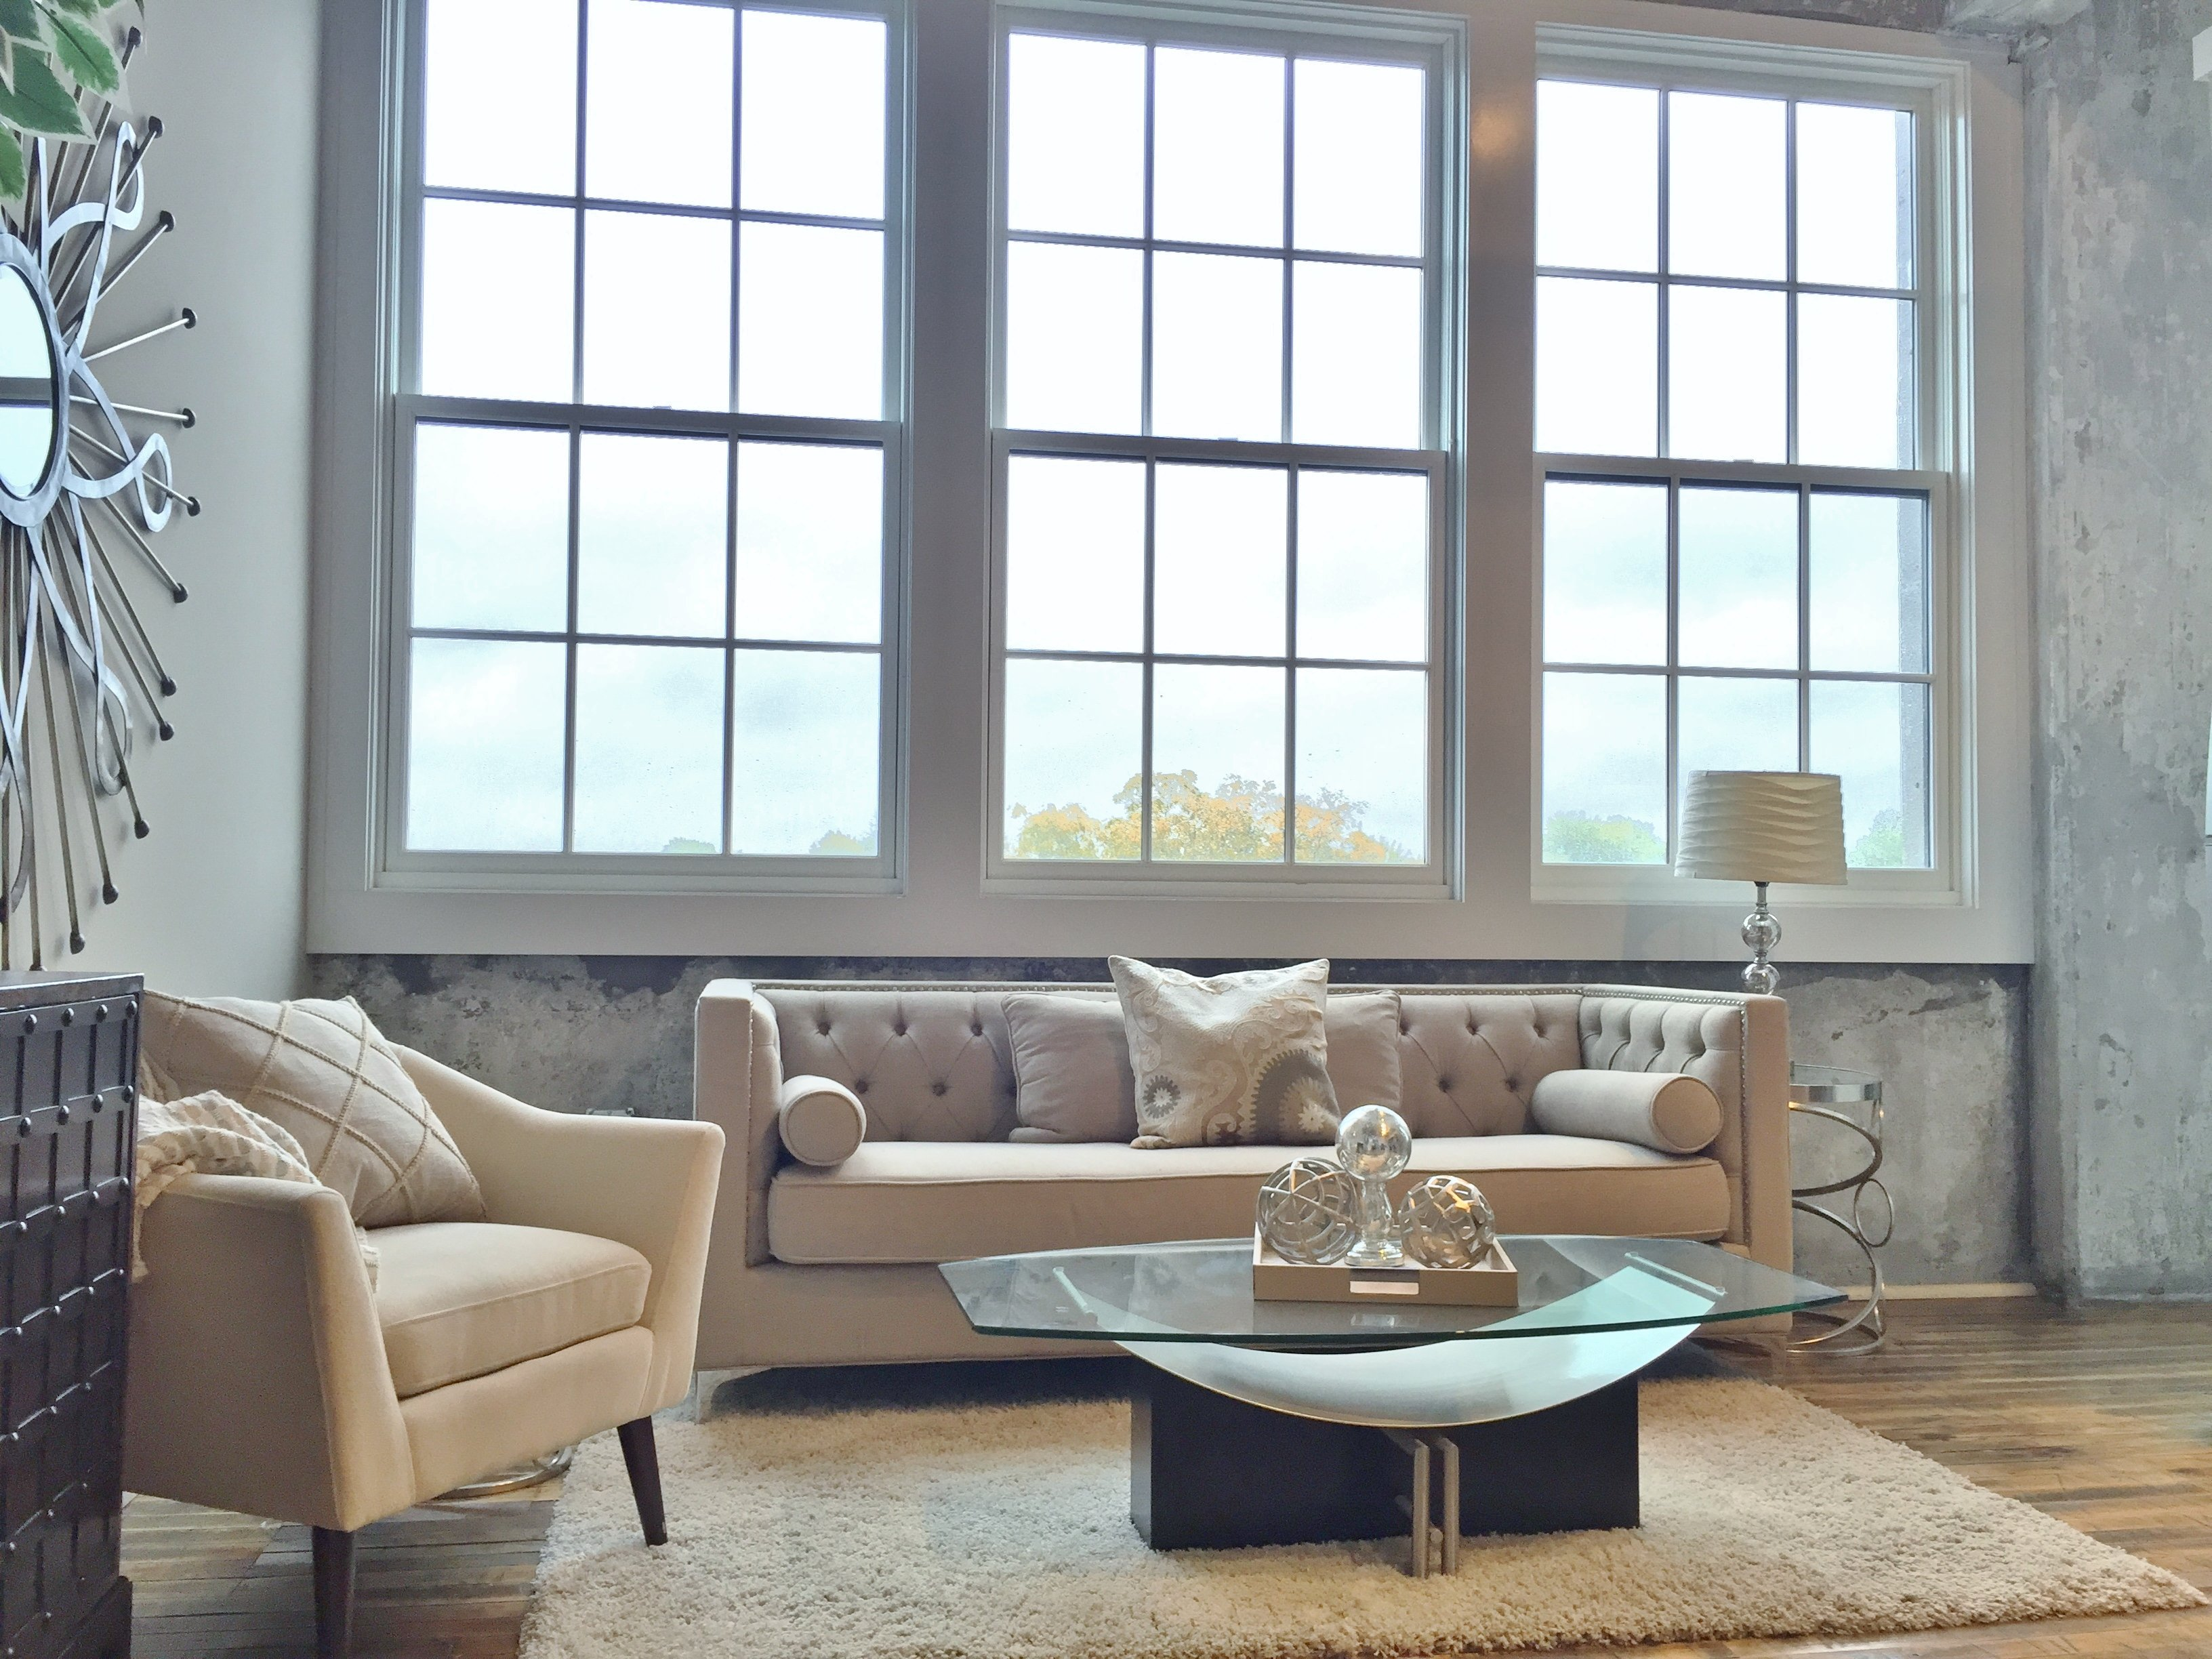 Luxury Apartments Available Amherst, NY